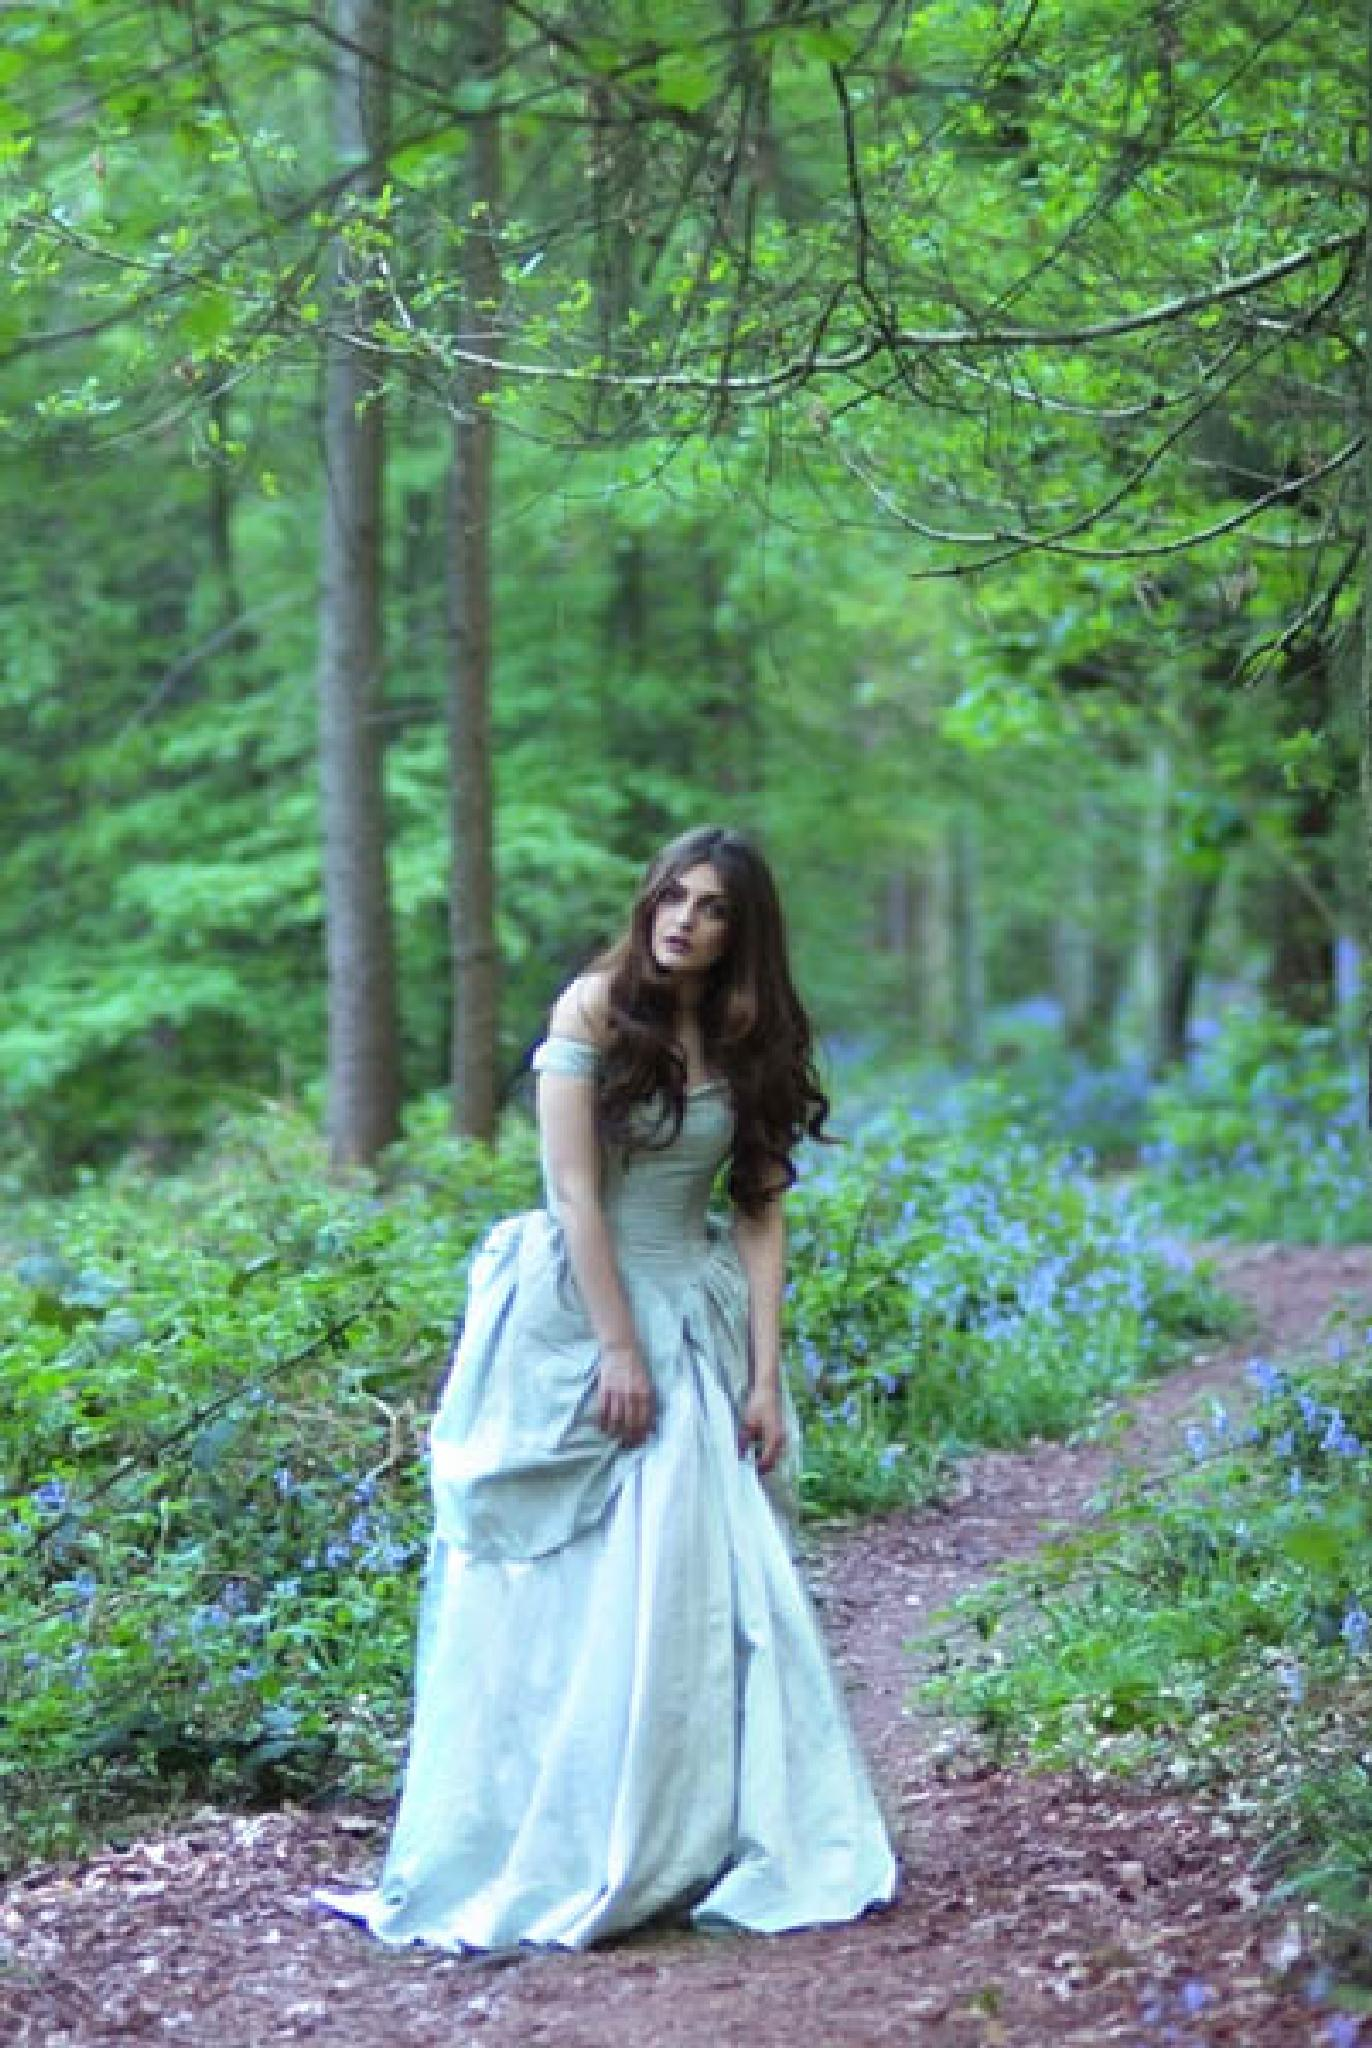 In The Bluebells by James Lawrie